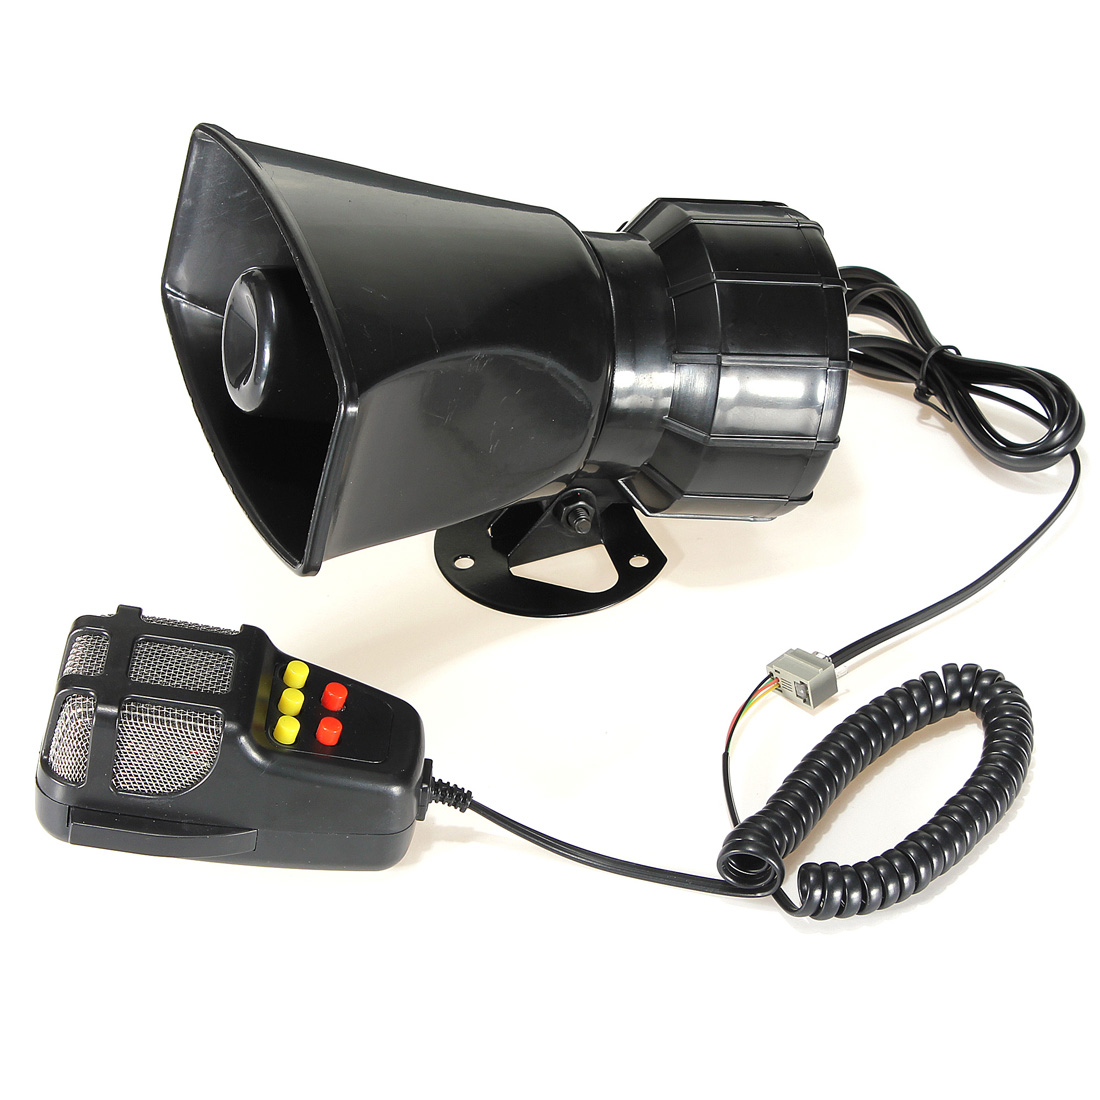 US $12 87 |12V Trumpets Horn Speaker miniphone Auto Moto 105db Cow + Sirens  + Songs-in Bicycle Bell from Sports & Entertainment on Aliexpress com |